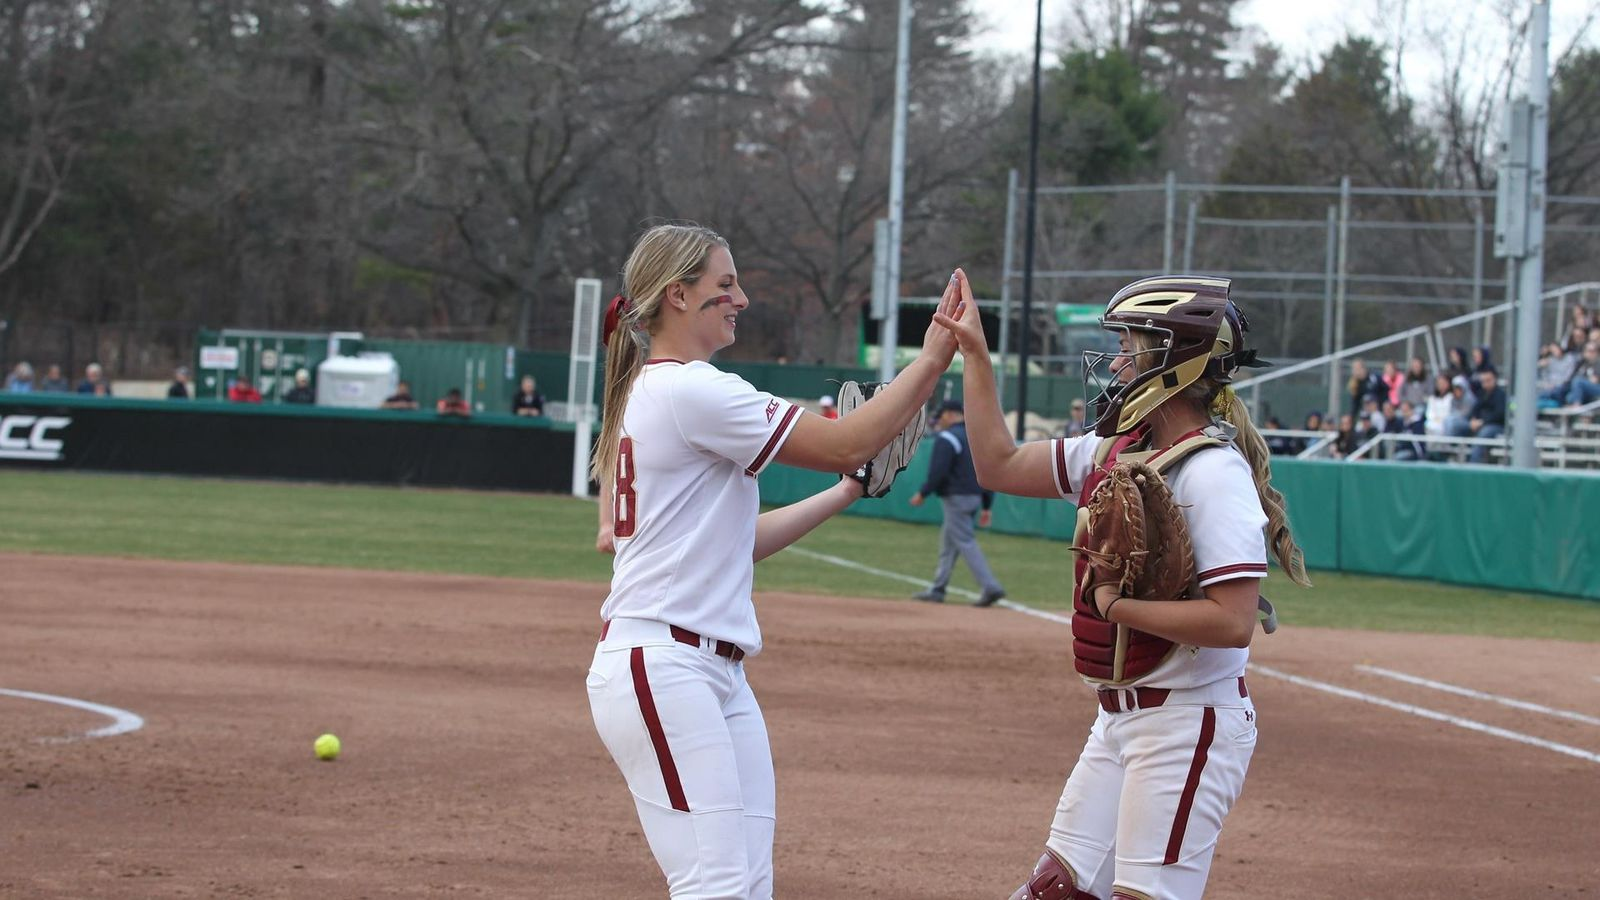 Softball Moves Up To 5th In ACC With Sweep of NCSU